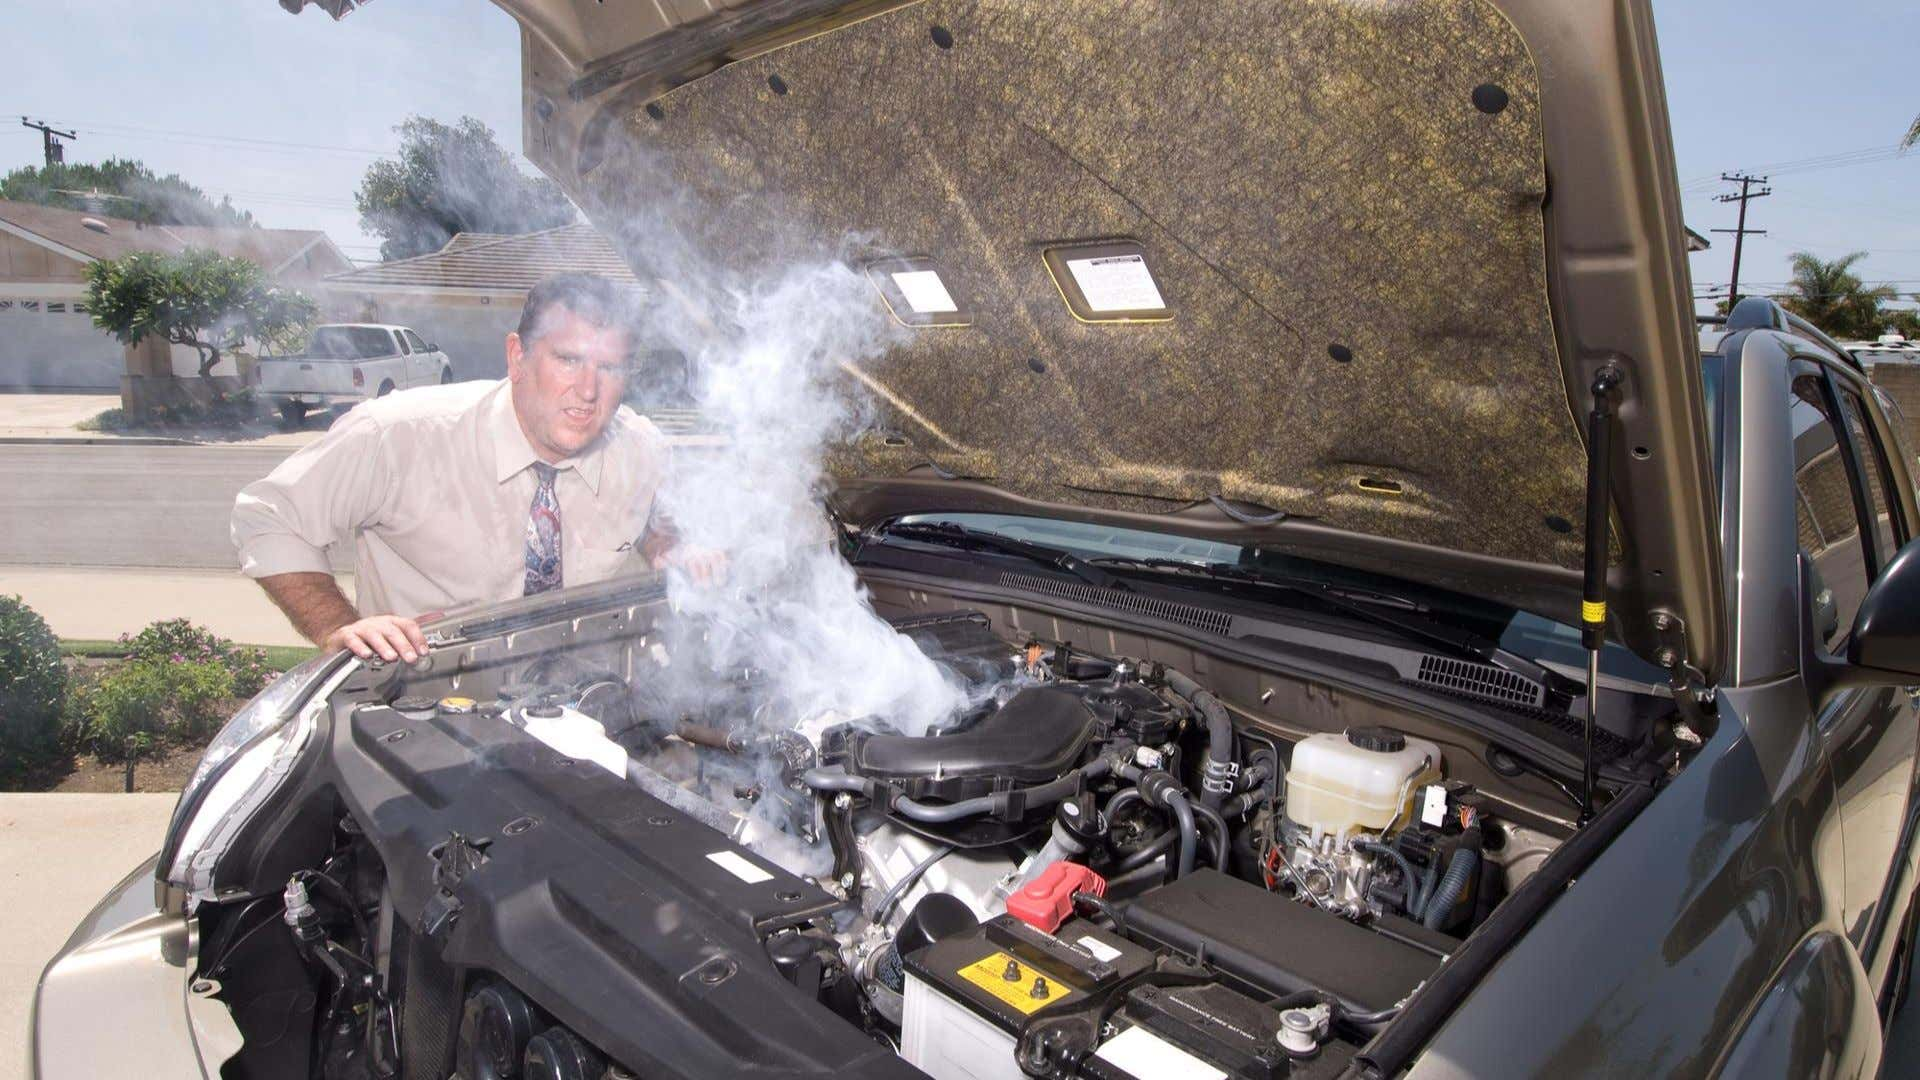 A car's engine smokes as a man looks to camera.